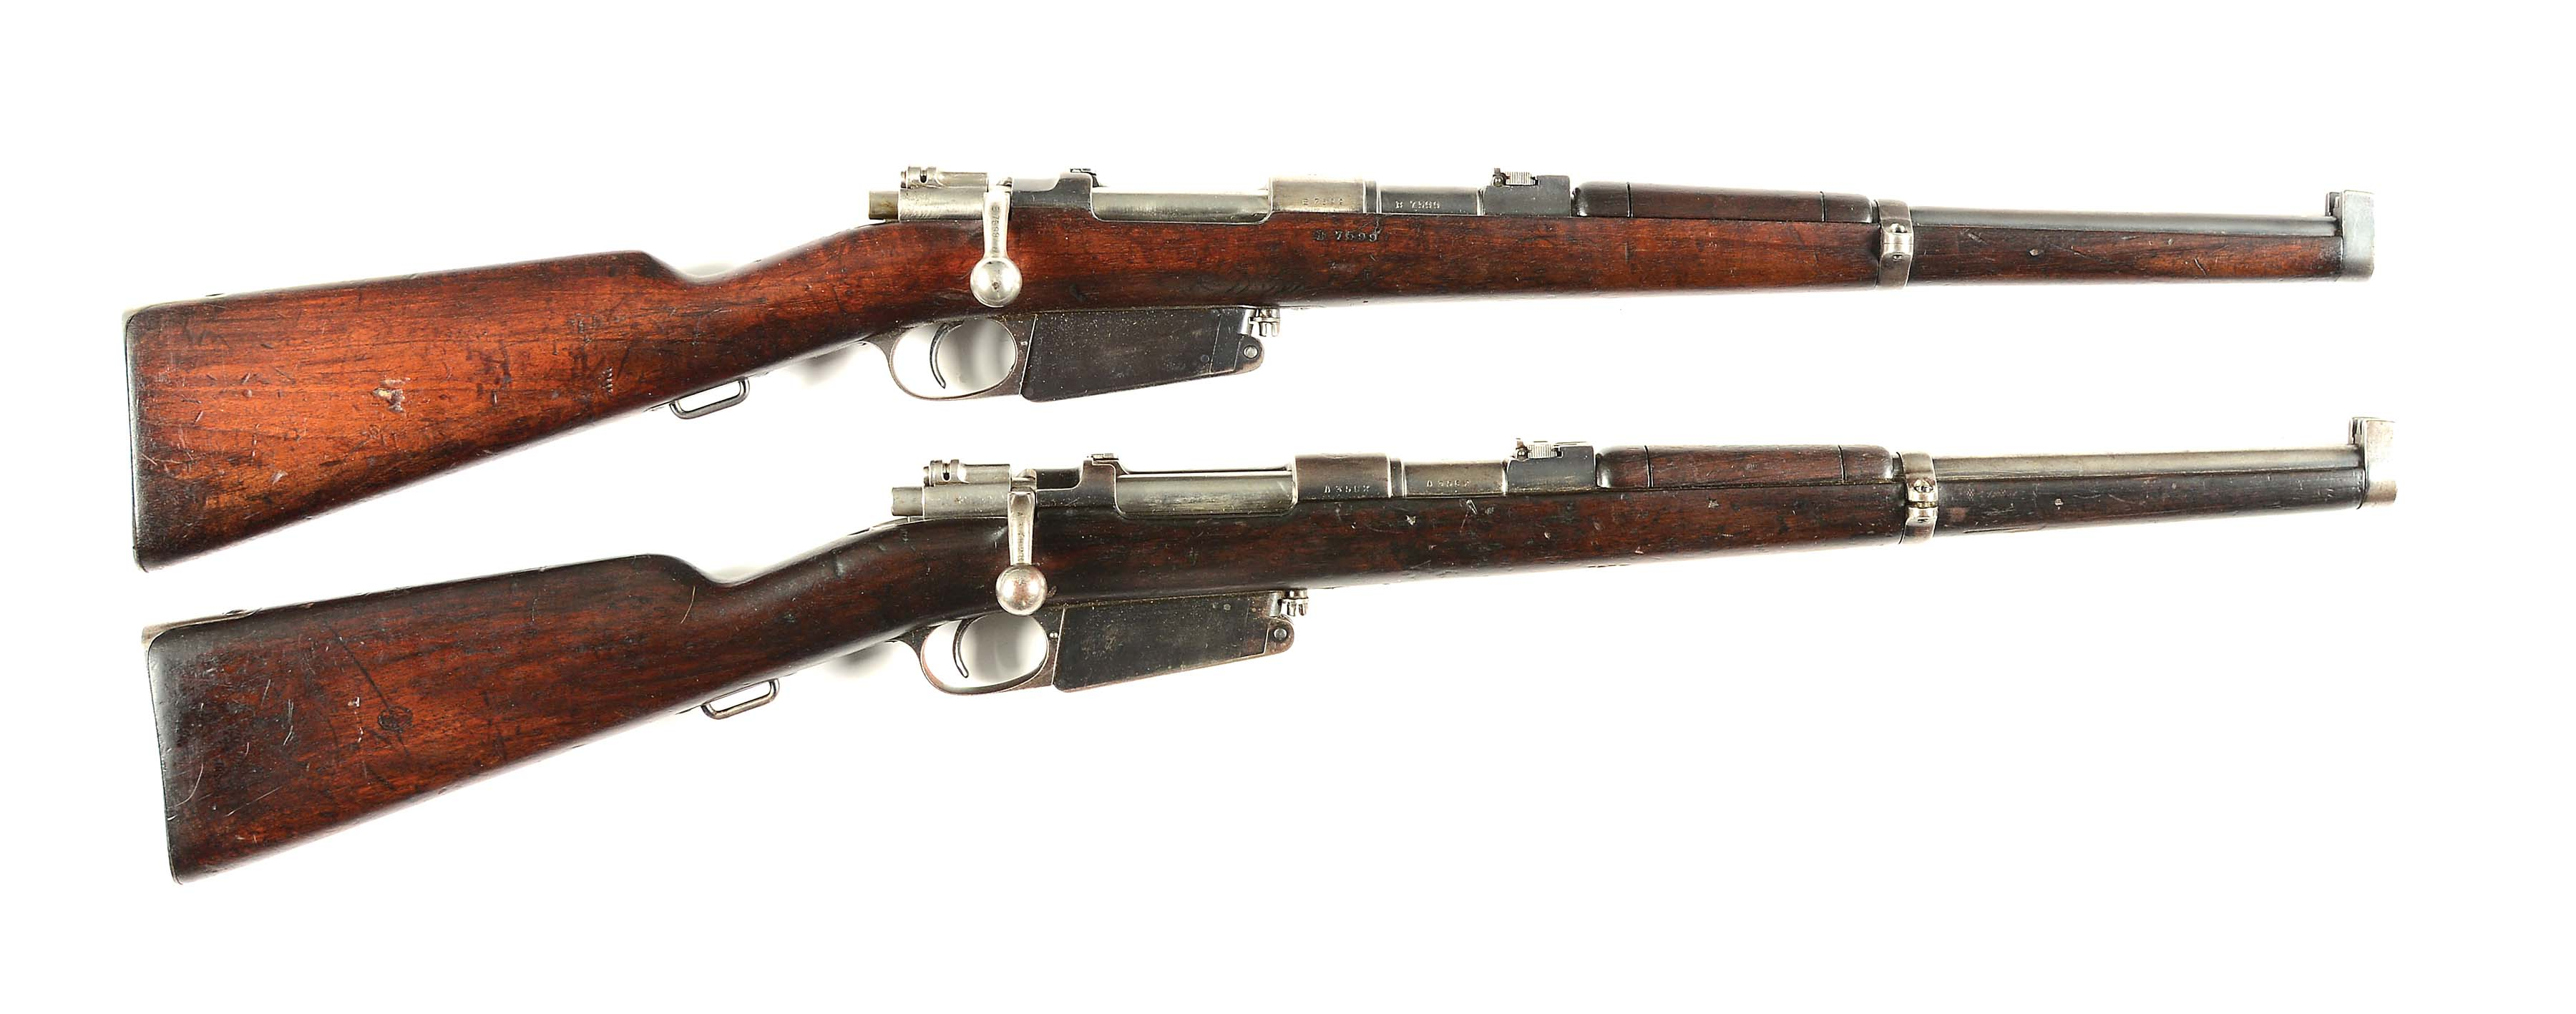 (C) COLLECTORS LOT OF 2: DWM AND LOEWE BERLIN 1891 ARGENTINO MAUSER CAVALRY...